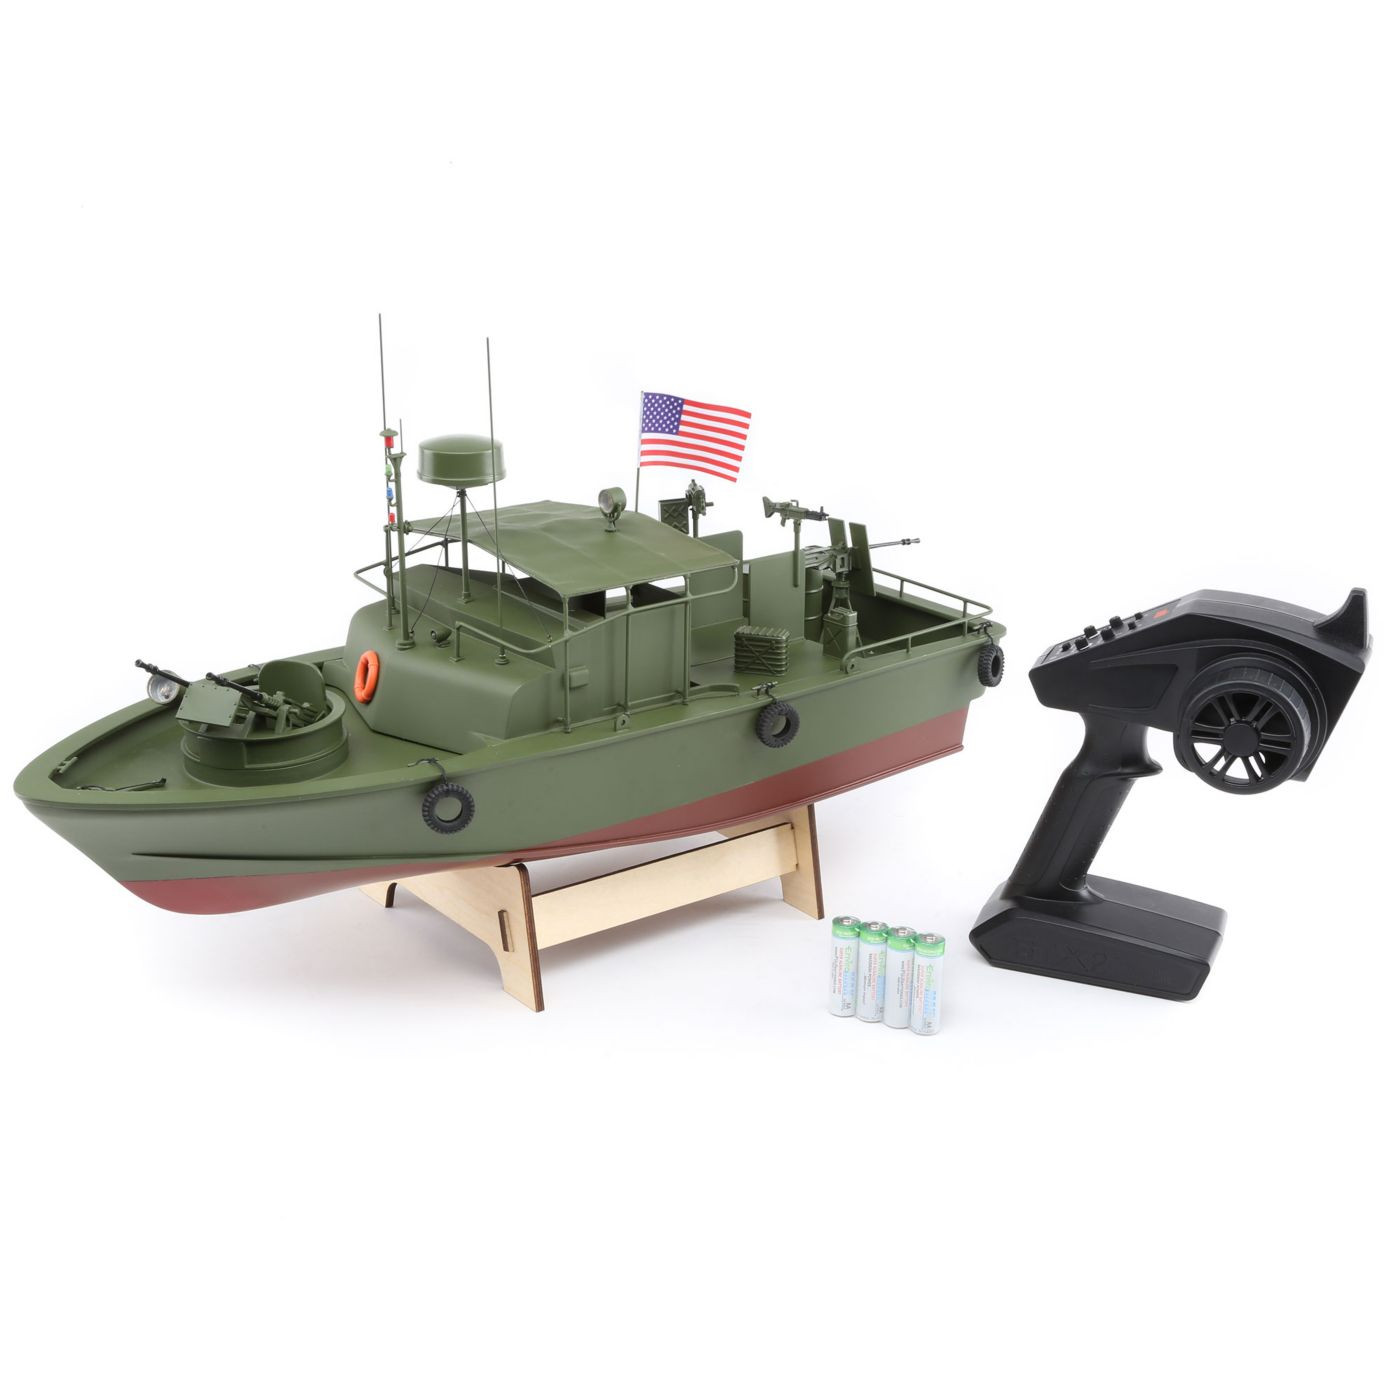 hpi radio controlled cars with Proboat Alpha Patrol Boat 21 Inch Rtr on Proboat Alpha Patrol Boat 21 Inch Rtr further Electric Drill Roto Start For Nitro Engines Includes 72v Battery Charger And Adapter Plate 149 P also The King Cobra moreover Associated Rc10gt further 4997842.